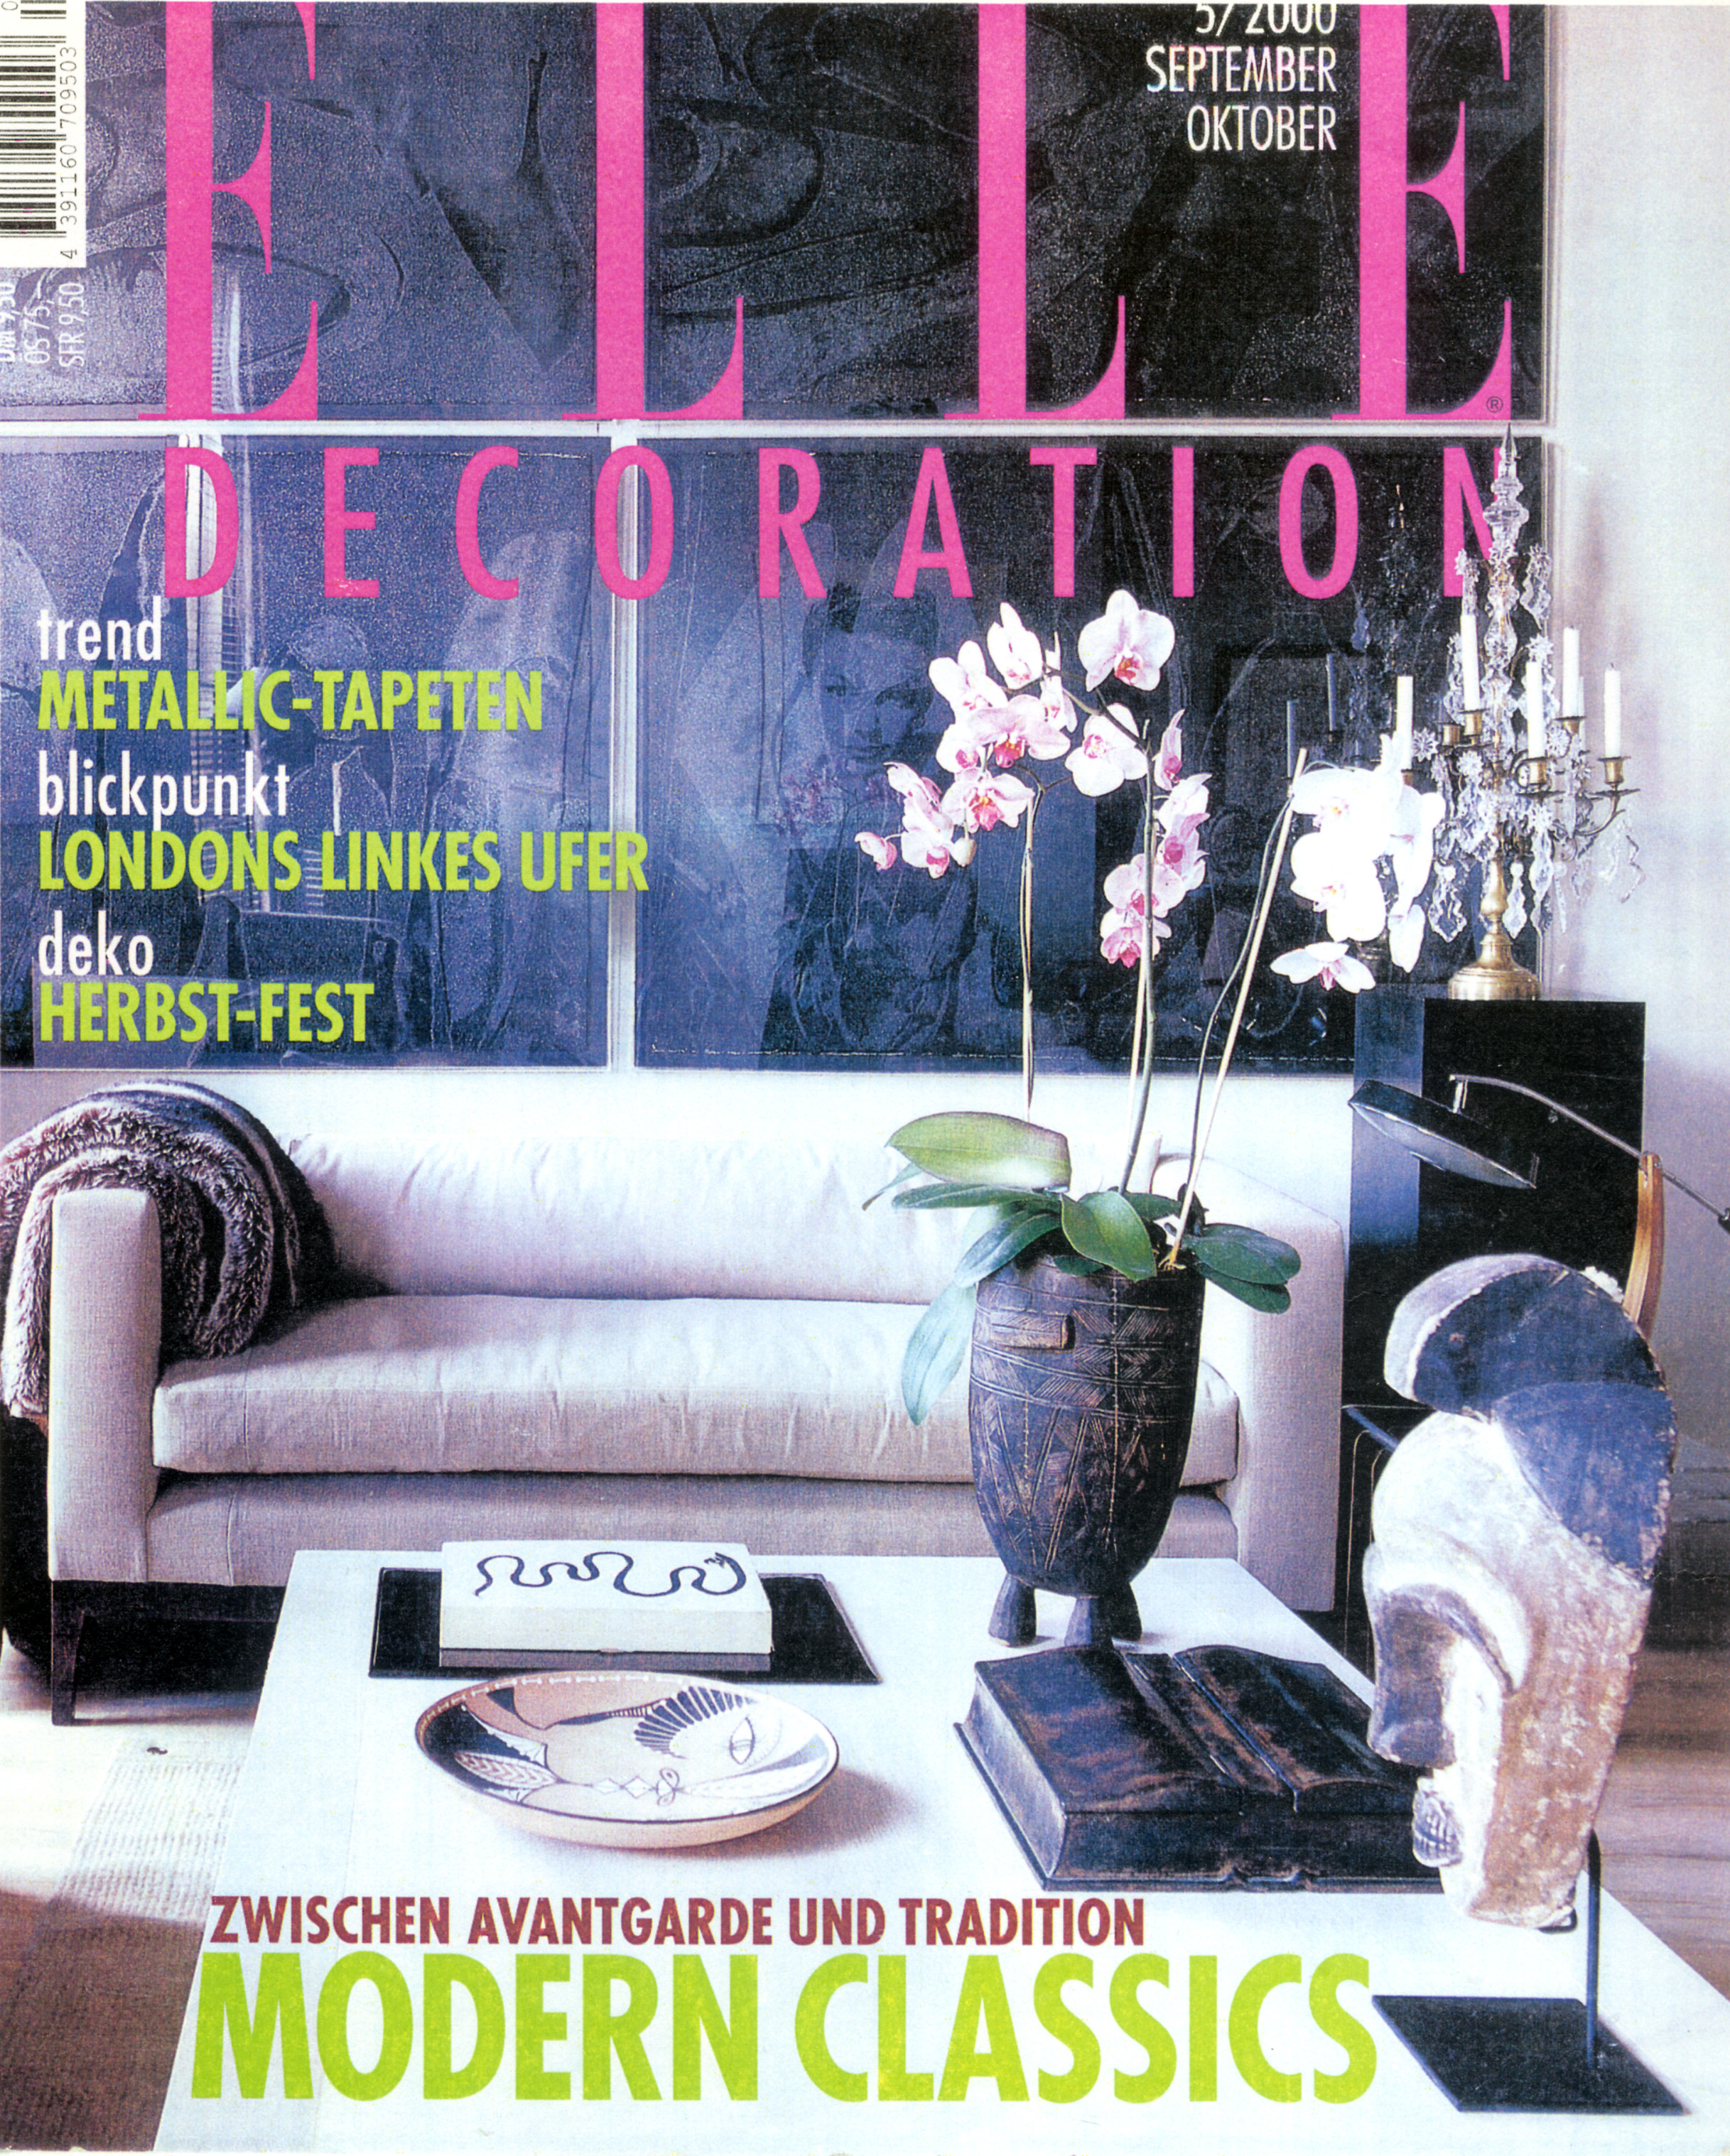 elle+decoration++ottobre2000.JPG